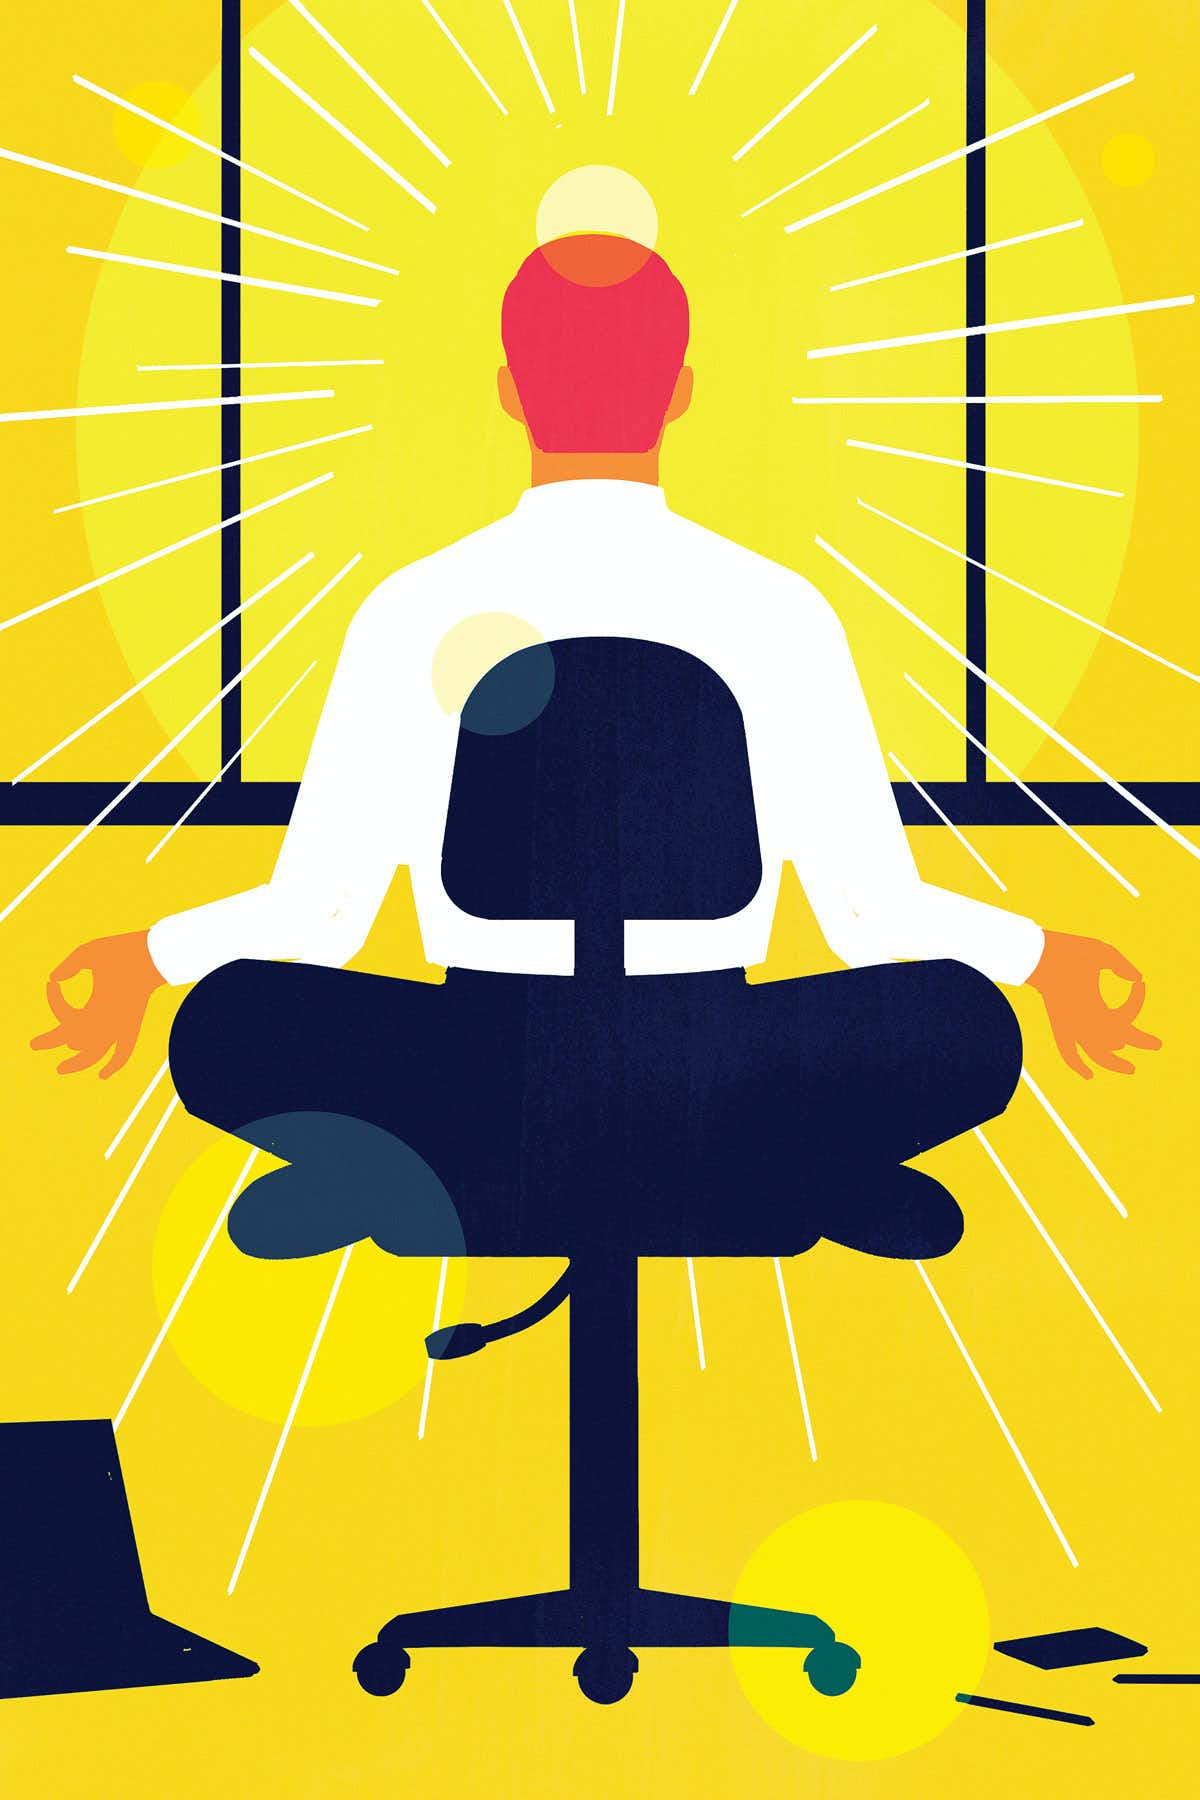 'Mindfulness' is just commercialized corporate-speak for Buddhist-inspired self-help training